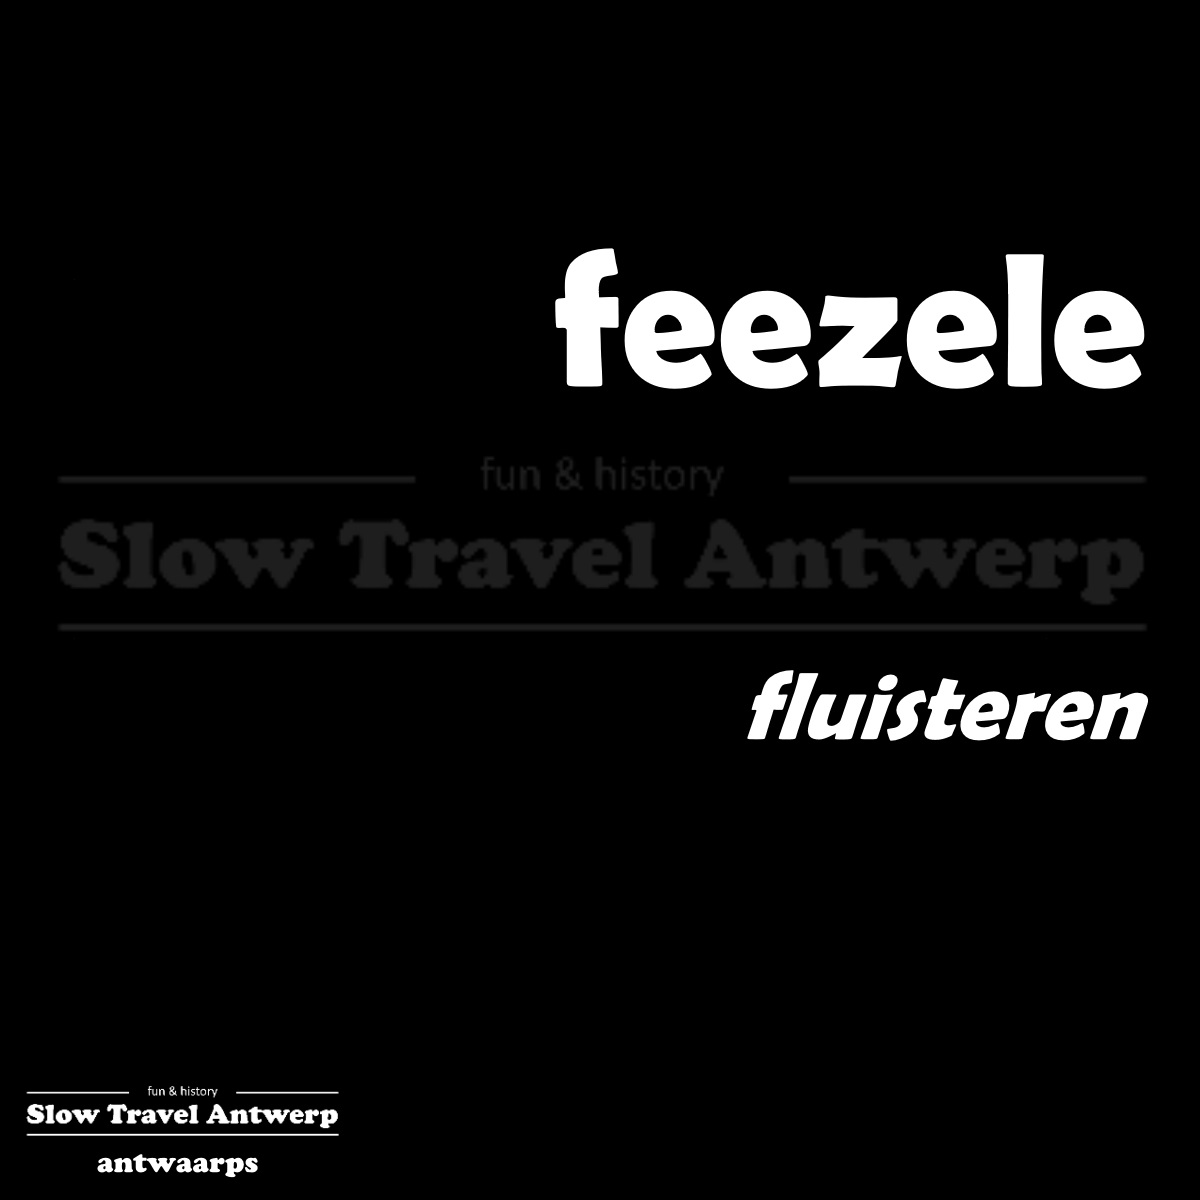 feezele – fluisteren – to whisper